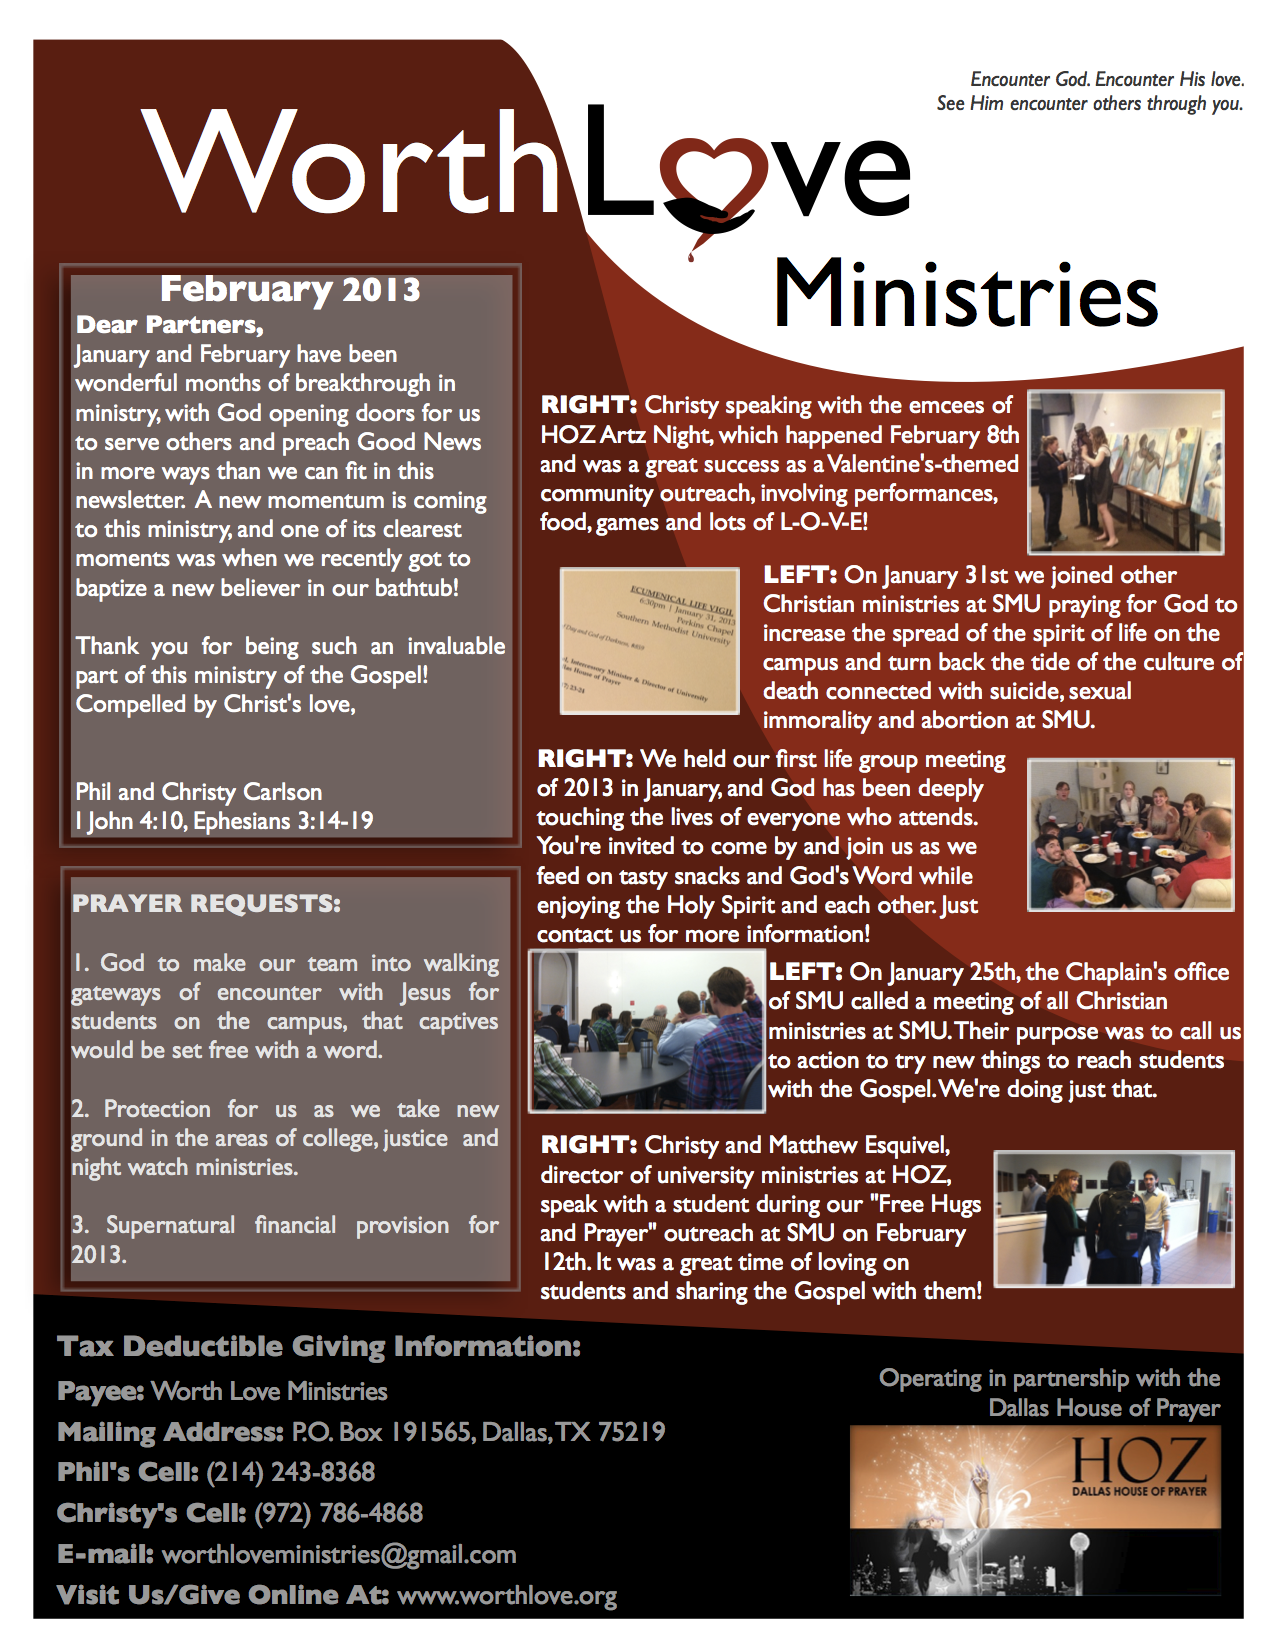 February 2013 Dear Partners, January and February have been wonderful months of breakthrough in ministry, with God opening doors for us to serve others and preach Good News in more ways than we can fit in this newsletter. A new momentum is coming to this ministry...